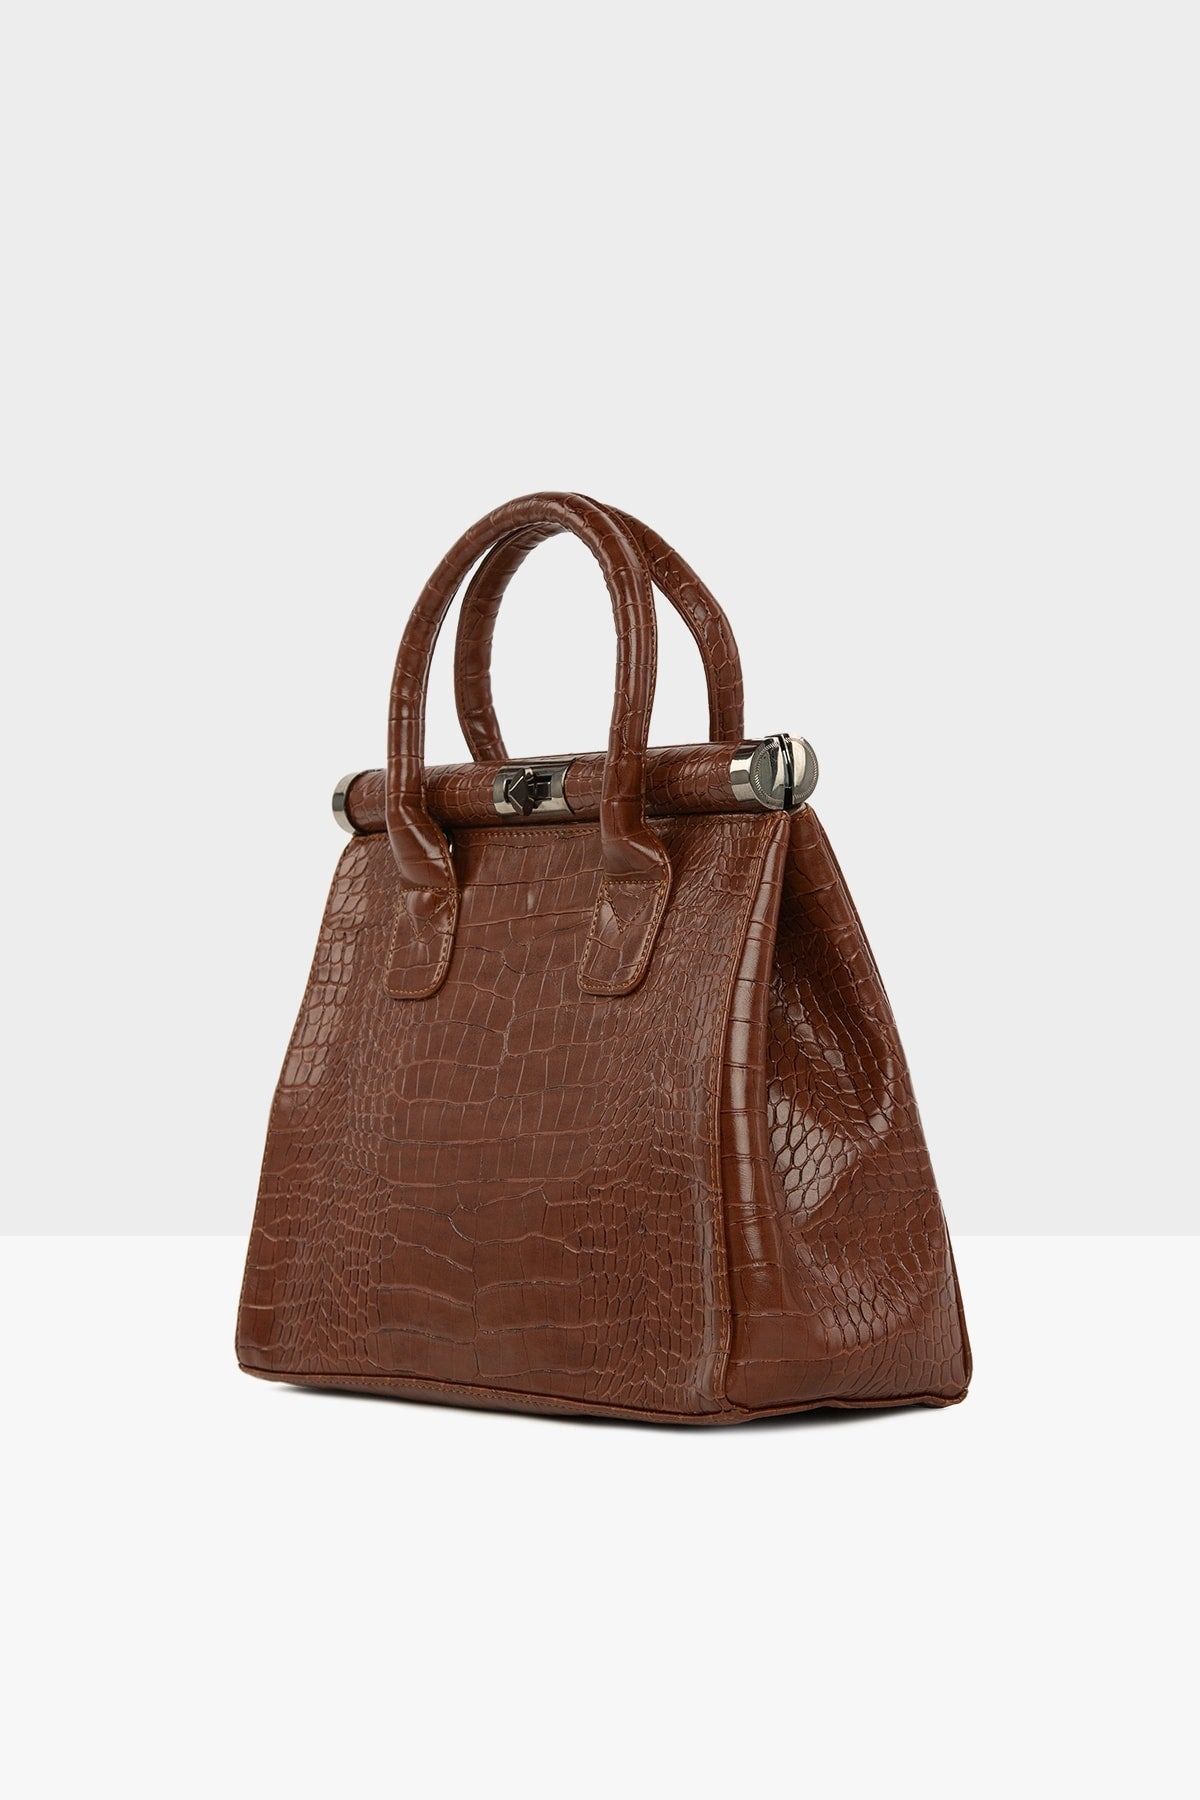 Sac a main classic marron croco